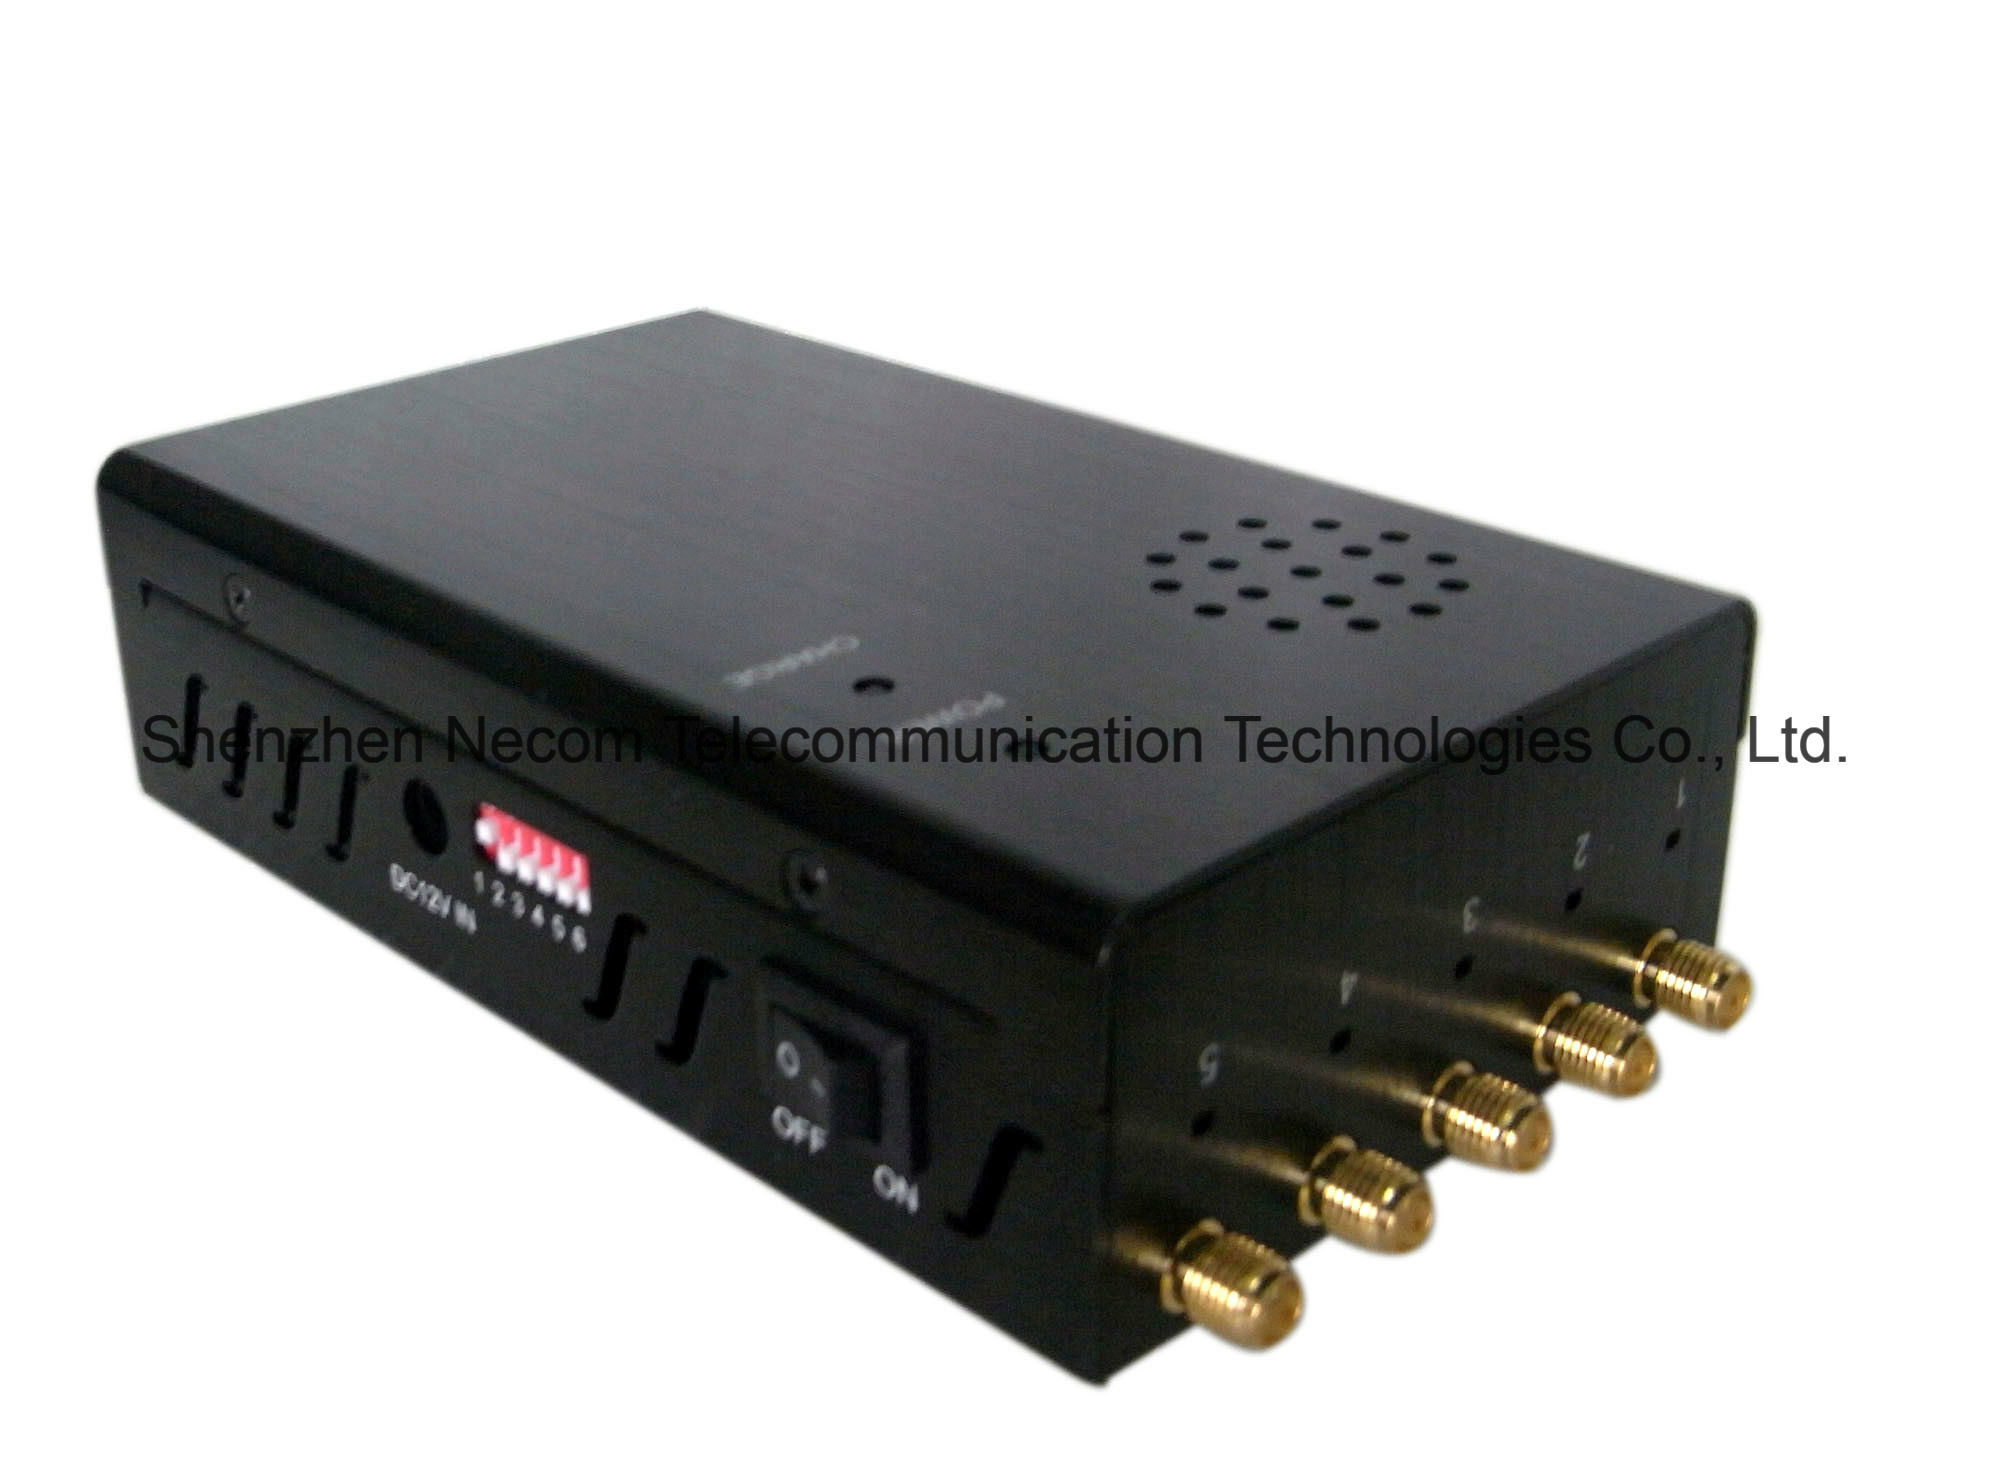 phone jammer x-wing builder - China Fashion Style Newest CDMA/GSM/Dcs/Phs/3G Cell Phone Signal Jammer - China 5 Band Signal Blockers, Five Antennas Jammers